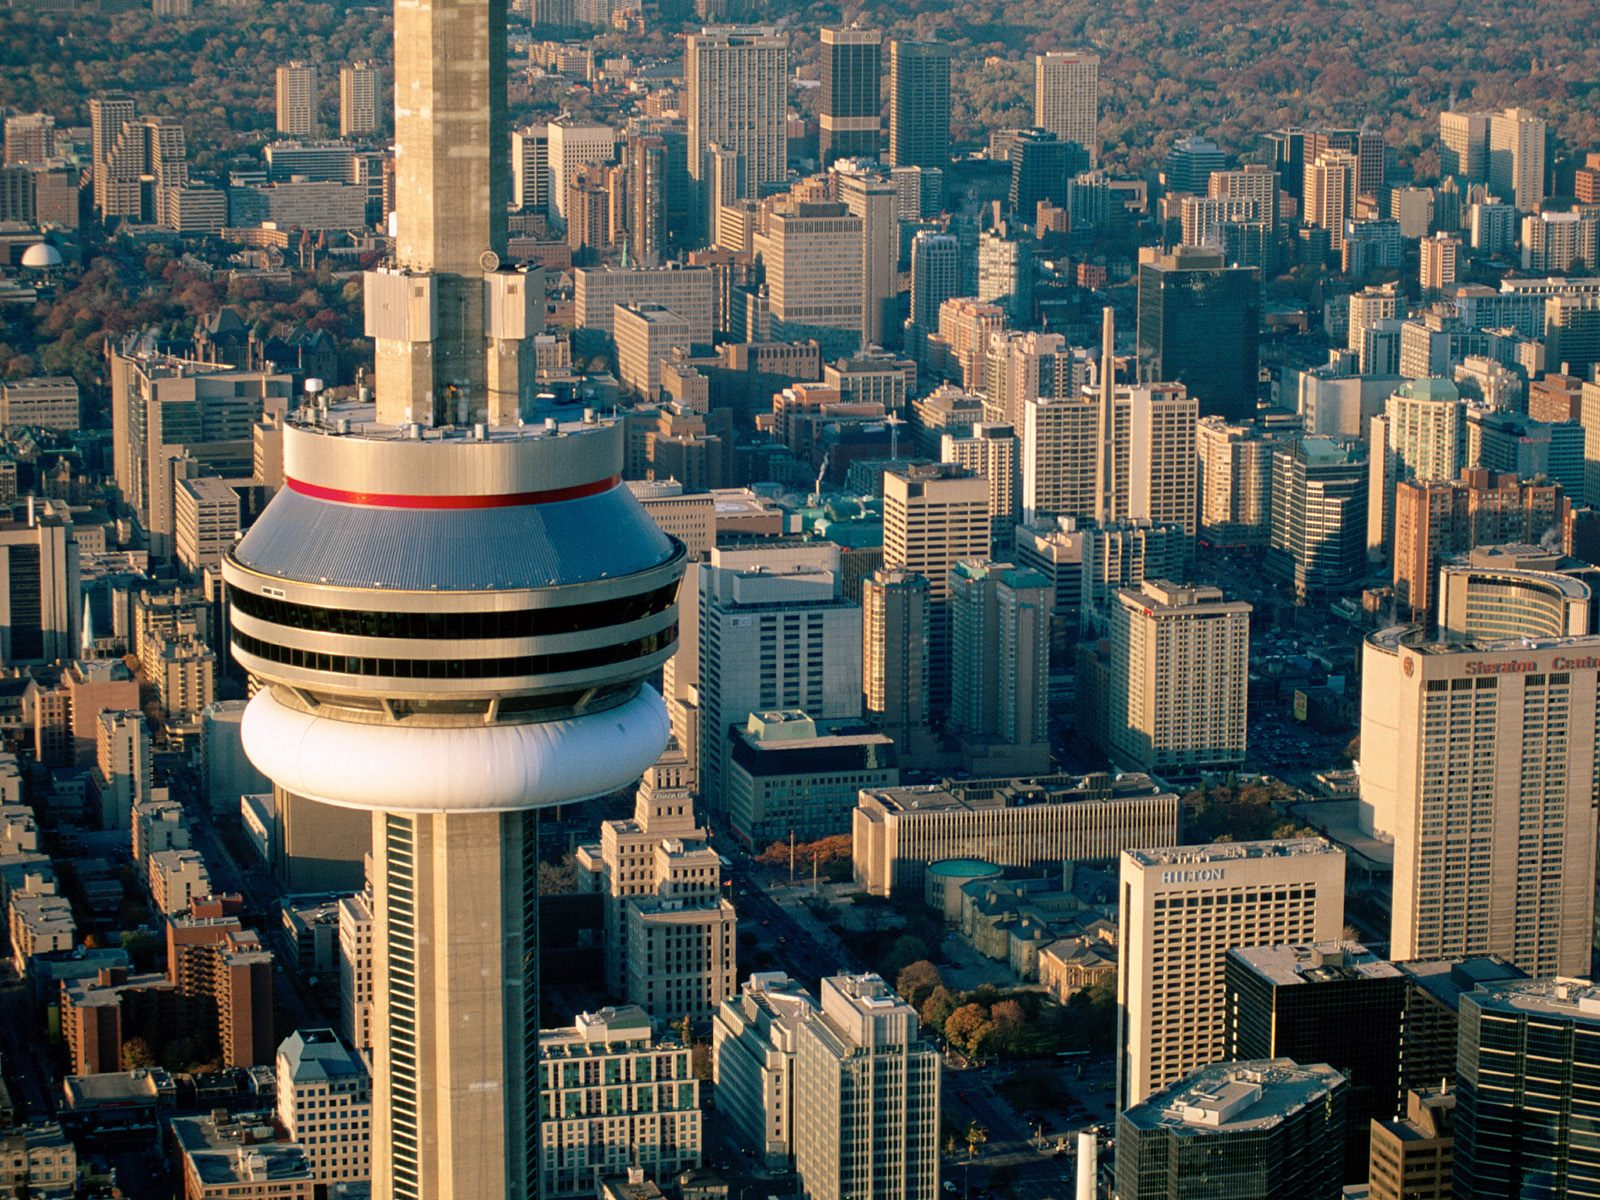 Aerial View of the CN Tower Toronto